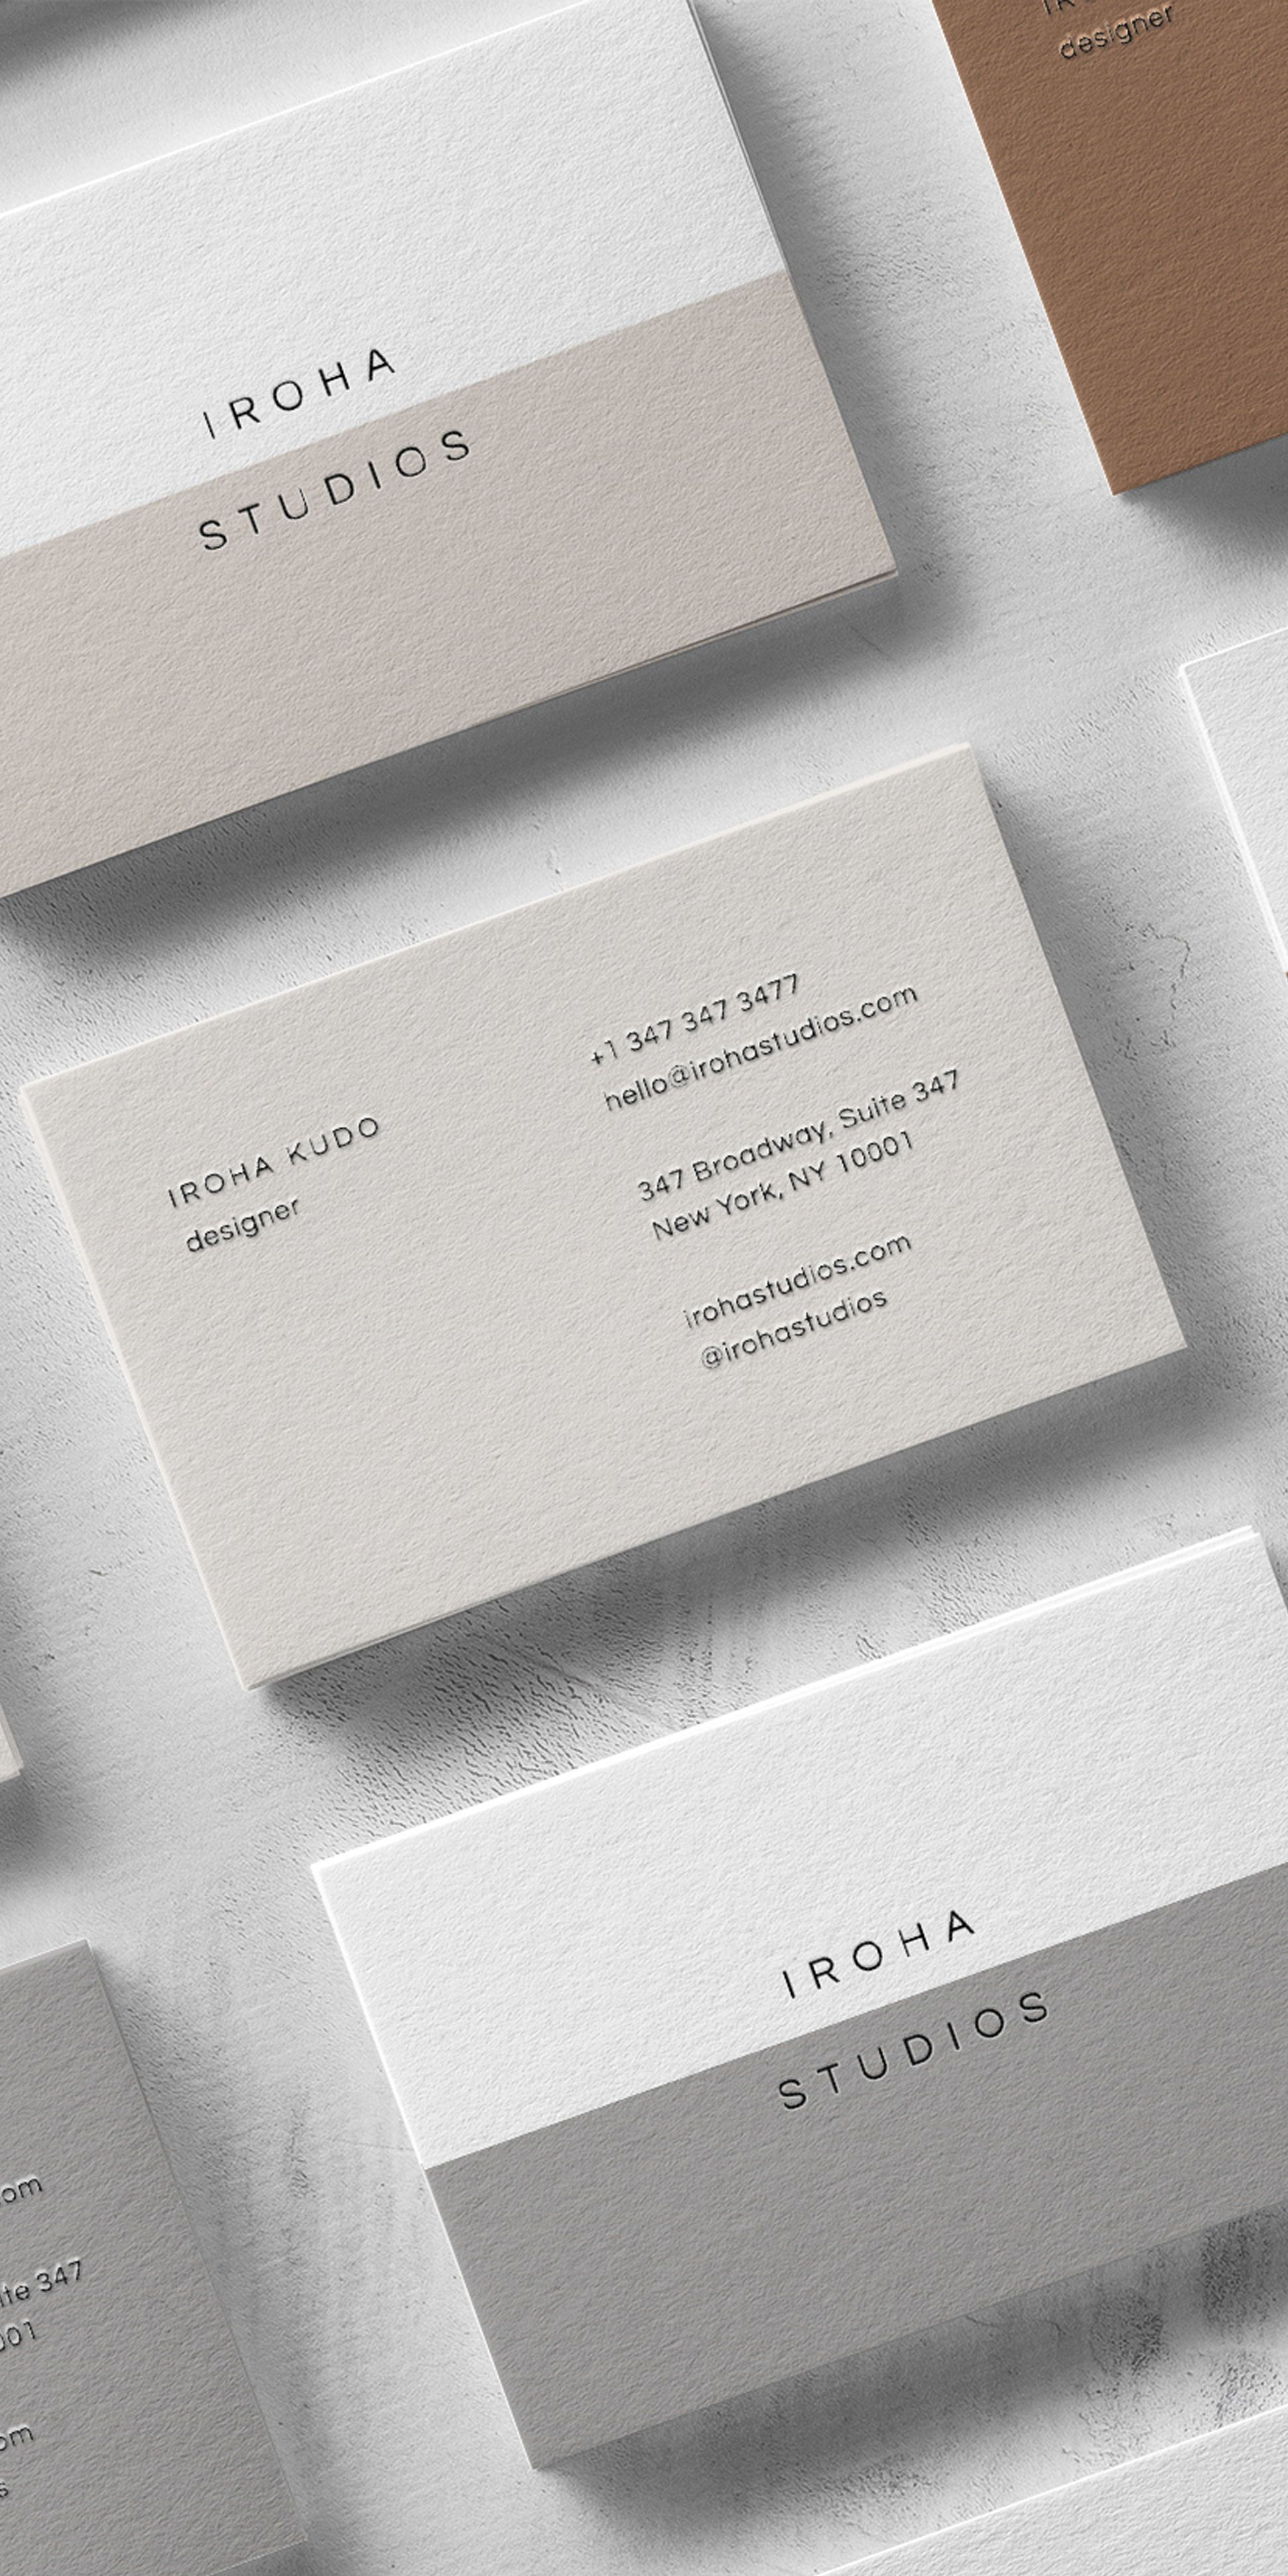 The Iroha is a bold yet refined business card template that carries your brand name loud and clear. With its dynamic color blocking and subtle font, it can be seamlessly adapted into many professions while maintaining a creative edge. The block and background colors can be changed to fit your brand. #print #design